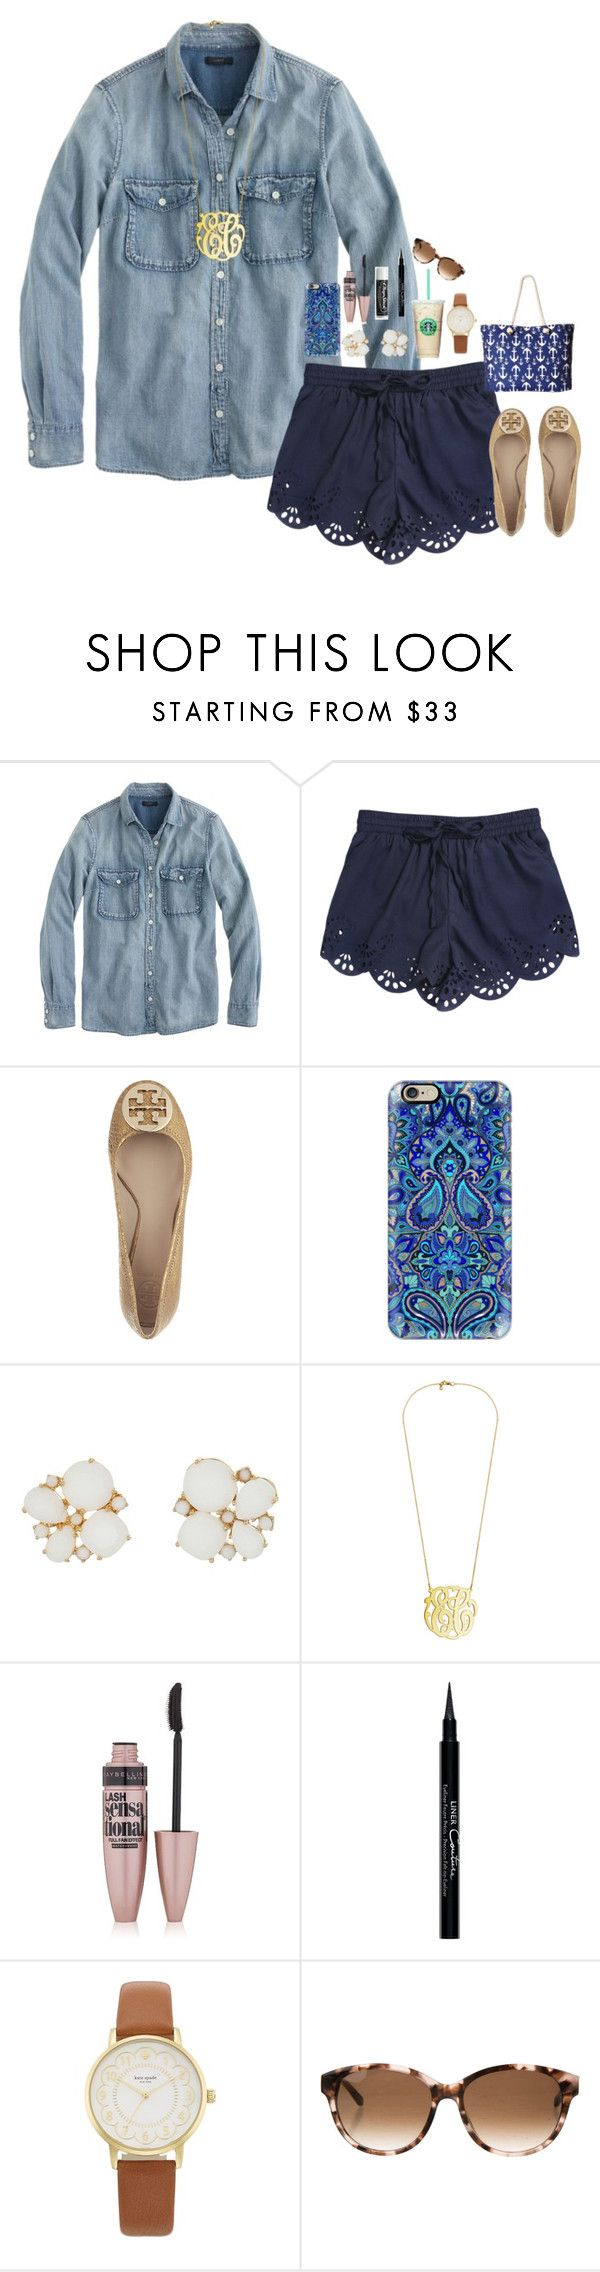 Invert color jpg online -  Inverted Colors Challenge Rtd By Pandapeeper Liked On Polyvore Featuring J Crew